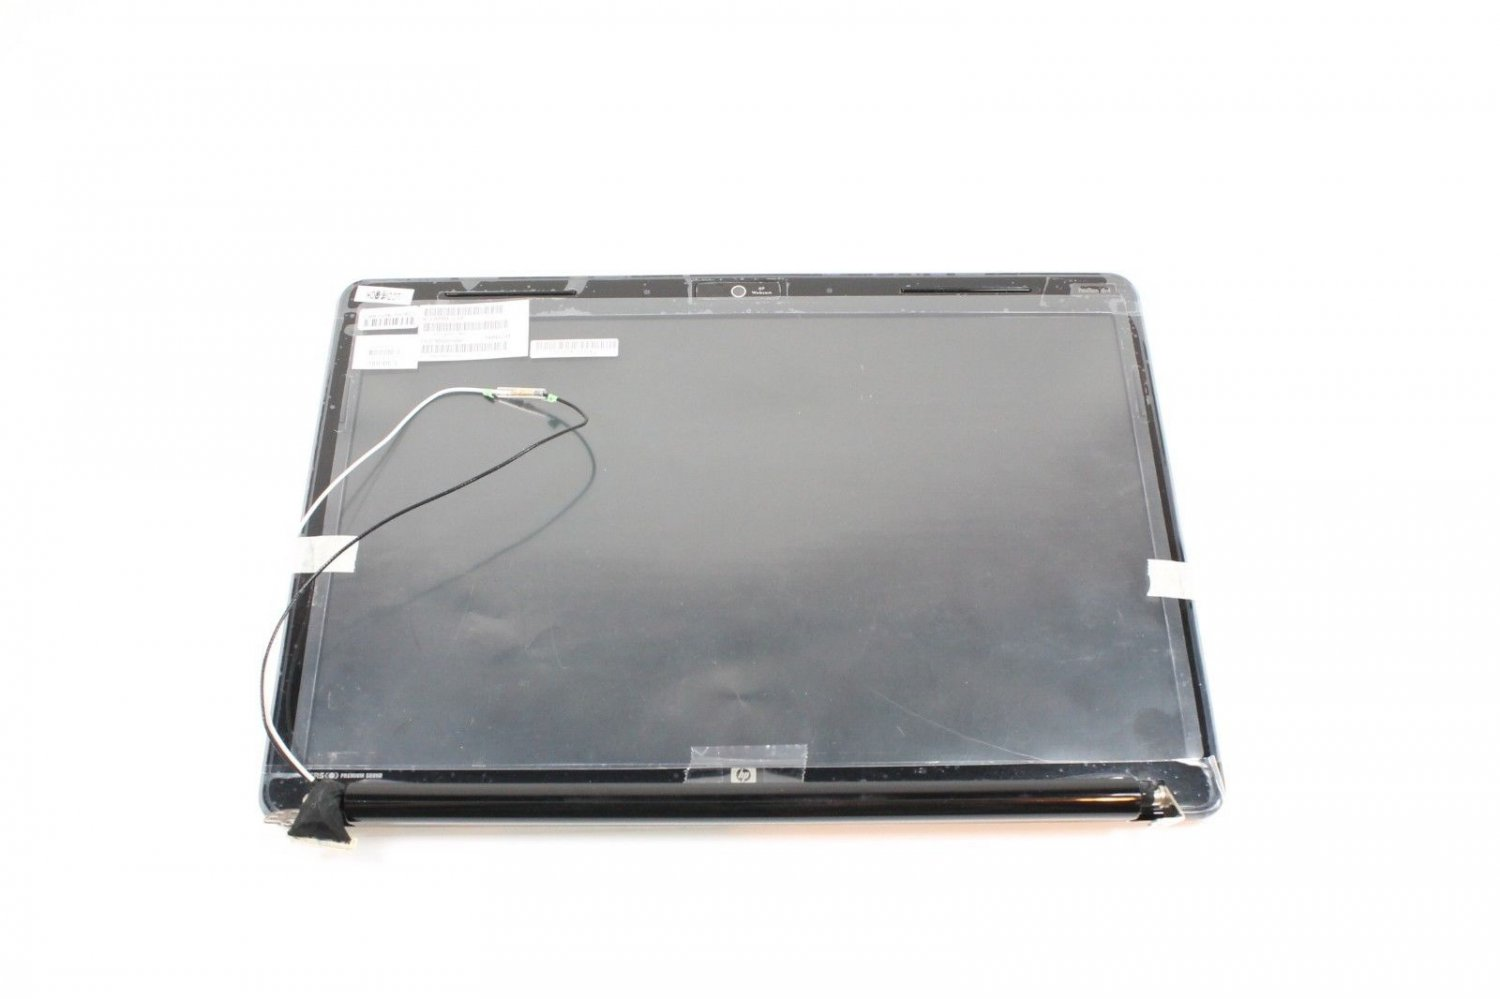 New OEM HP Pavilion DV4 Laptop 14.1inch WXGA Complete LCD Screen - 535624-002